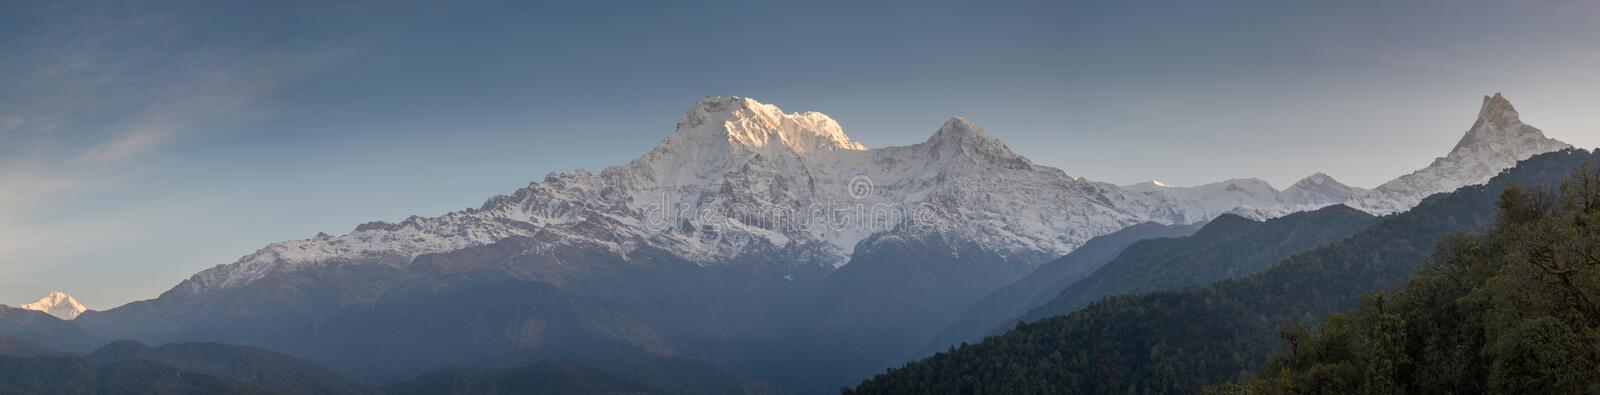 Panorama epic landscape view of beautiful Himalaya mountains covered with snow at Mardi Himal trekking area during sunrise. In Nepal royalty free stock photo